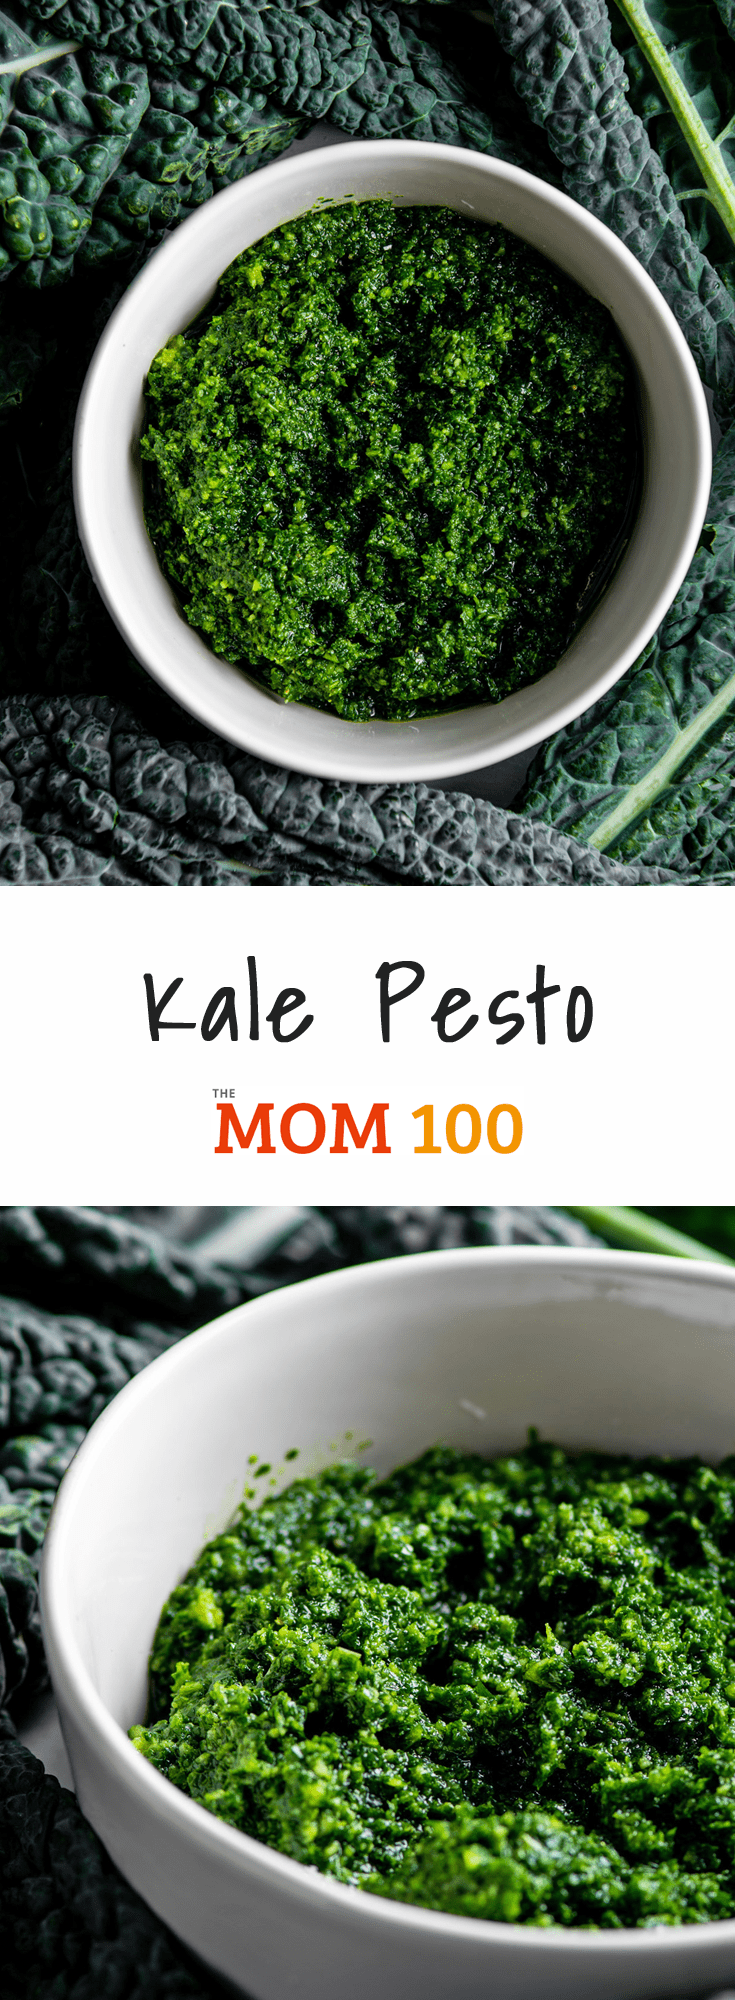 Kale Pesto / A clever (and easy!) kale pesto recipe that you can make when there's no basil in sight! #nutfree